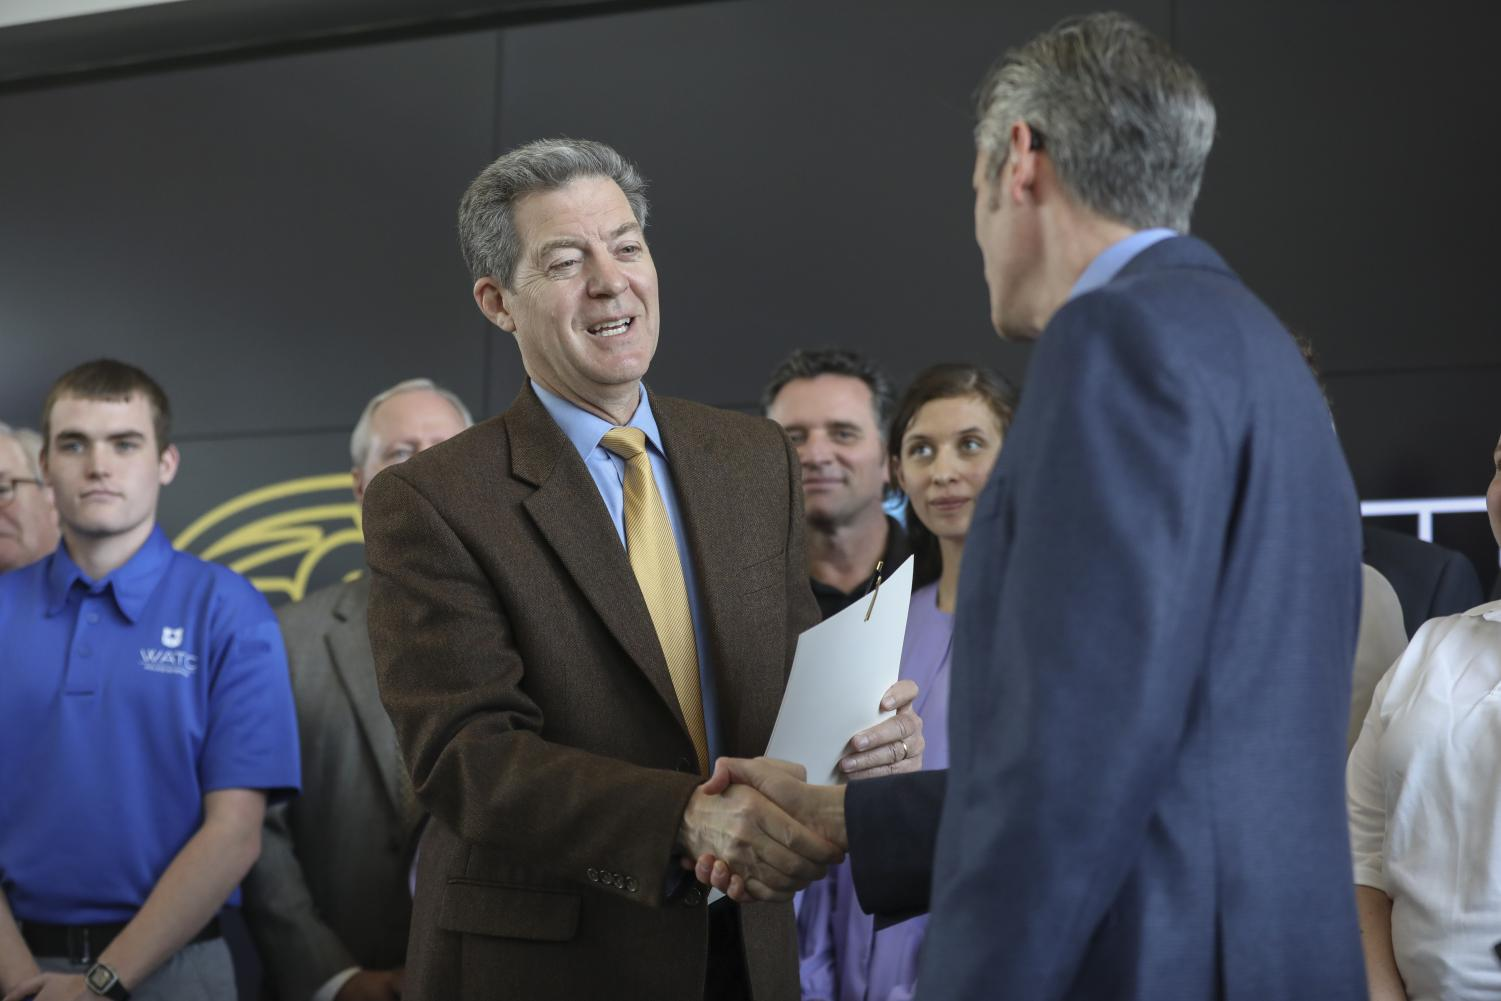 Kansas Lt. Gov. Will Takeover As Brownback Leaves For Ambassadorship